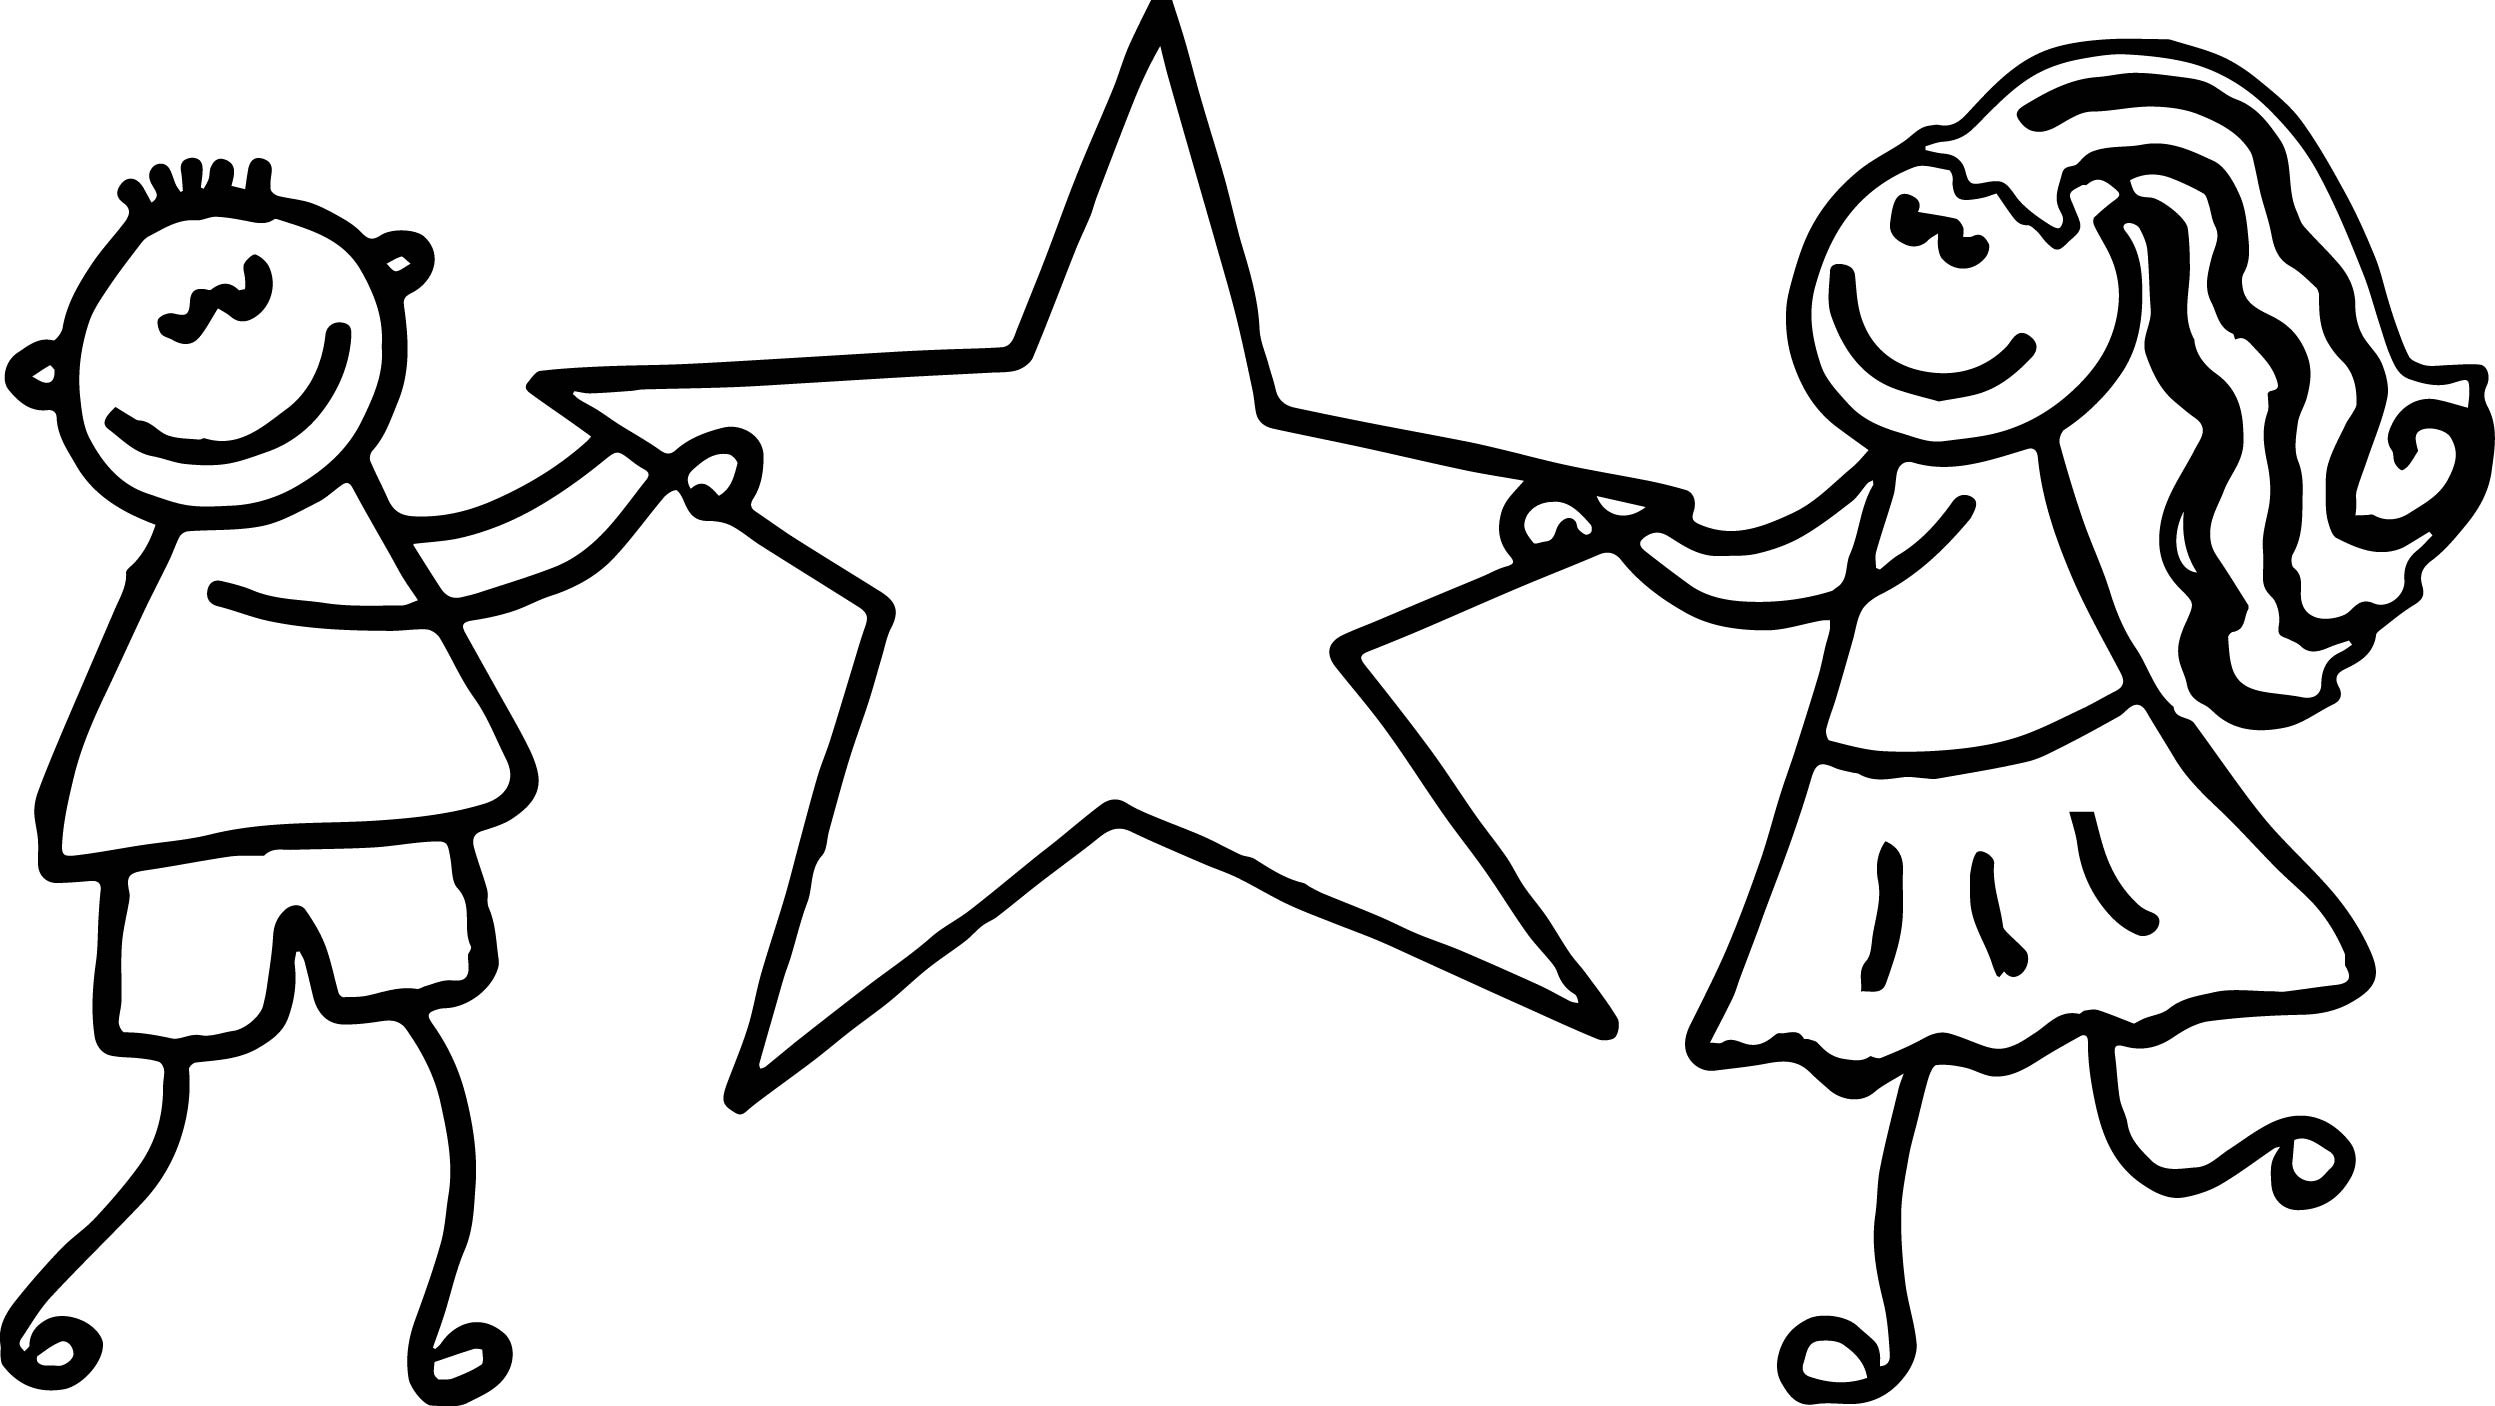 9Th Grade Coloring Sheets For Girls  Kids Girl Boy Hold Star 3rd Grade Coloring Page